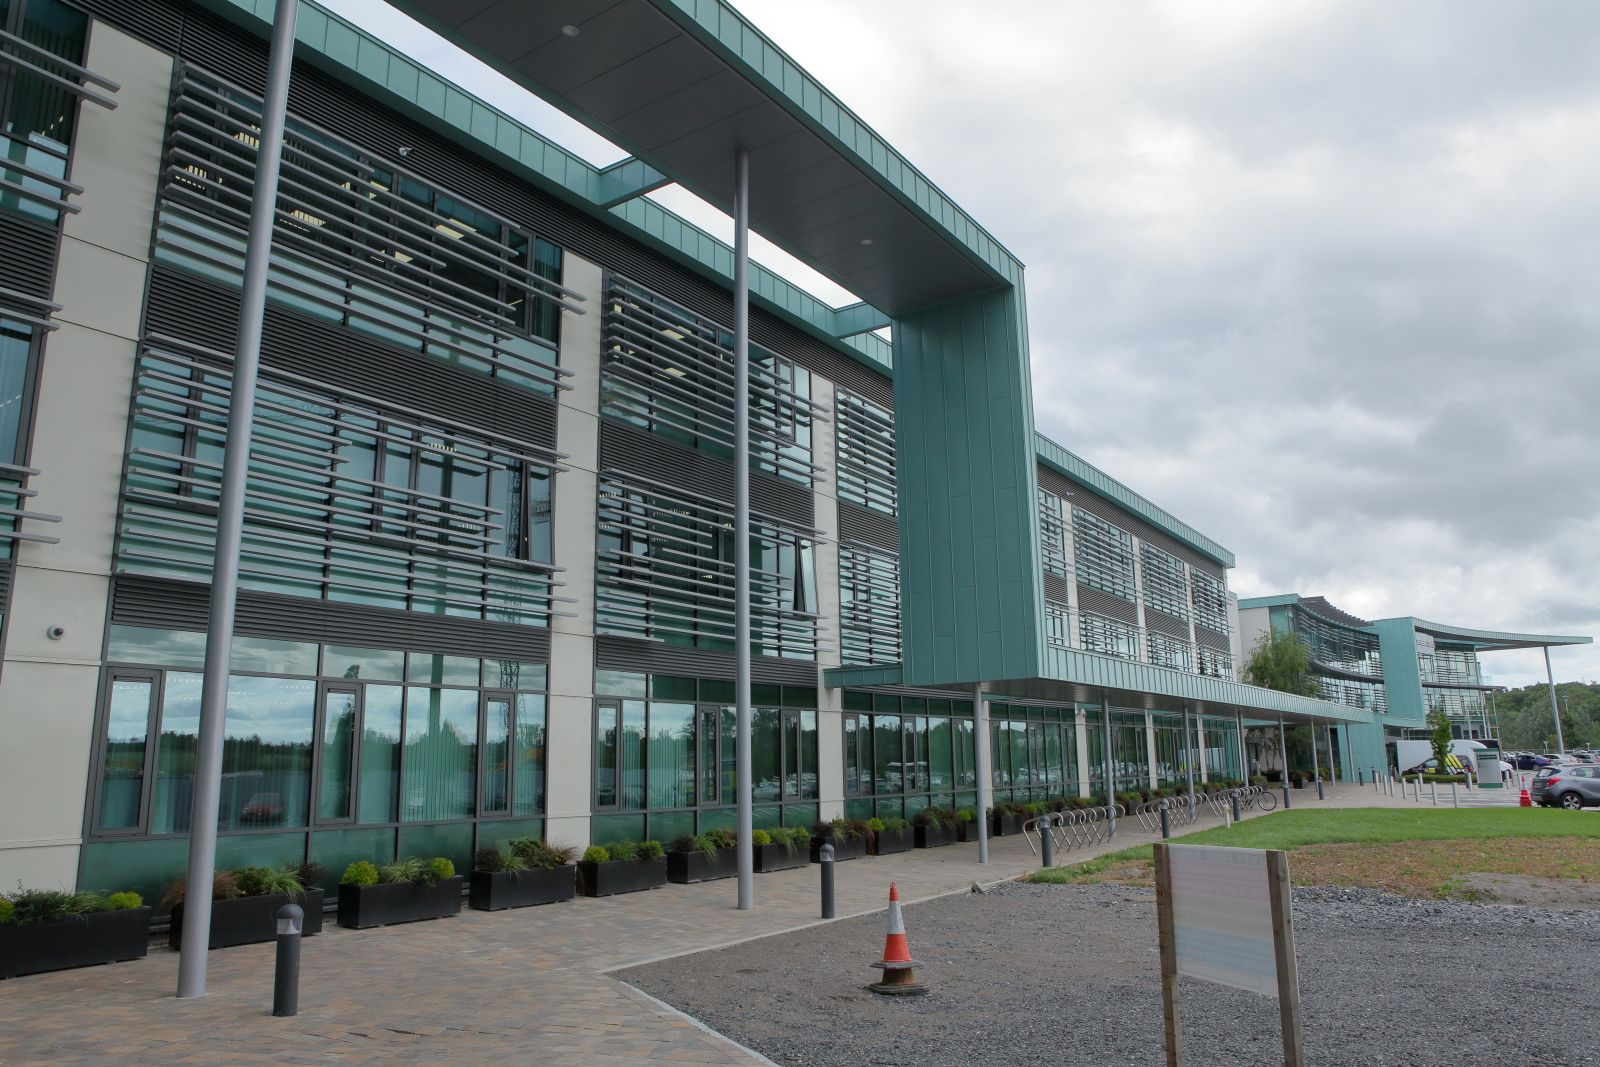 Limerick East City Plaza Phase 2